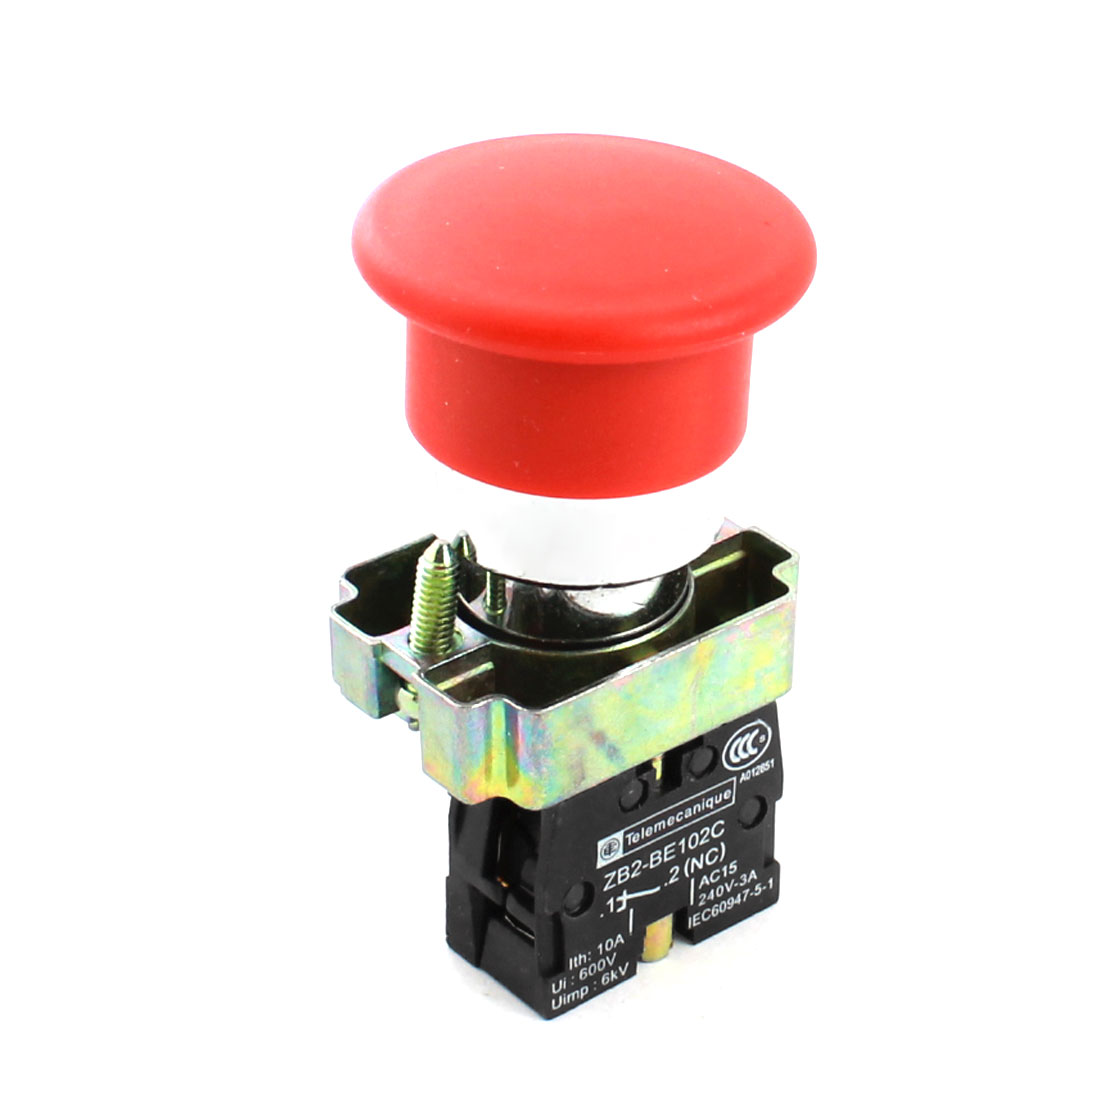 ZB2-BE102C Emergency Stopping Momentary Red Sign Push Button Switch NC SPST AC240V 3A